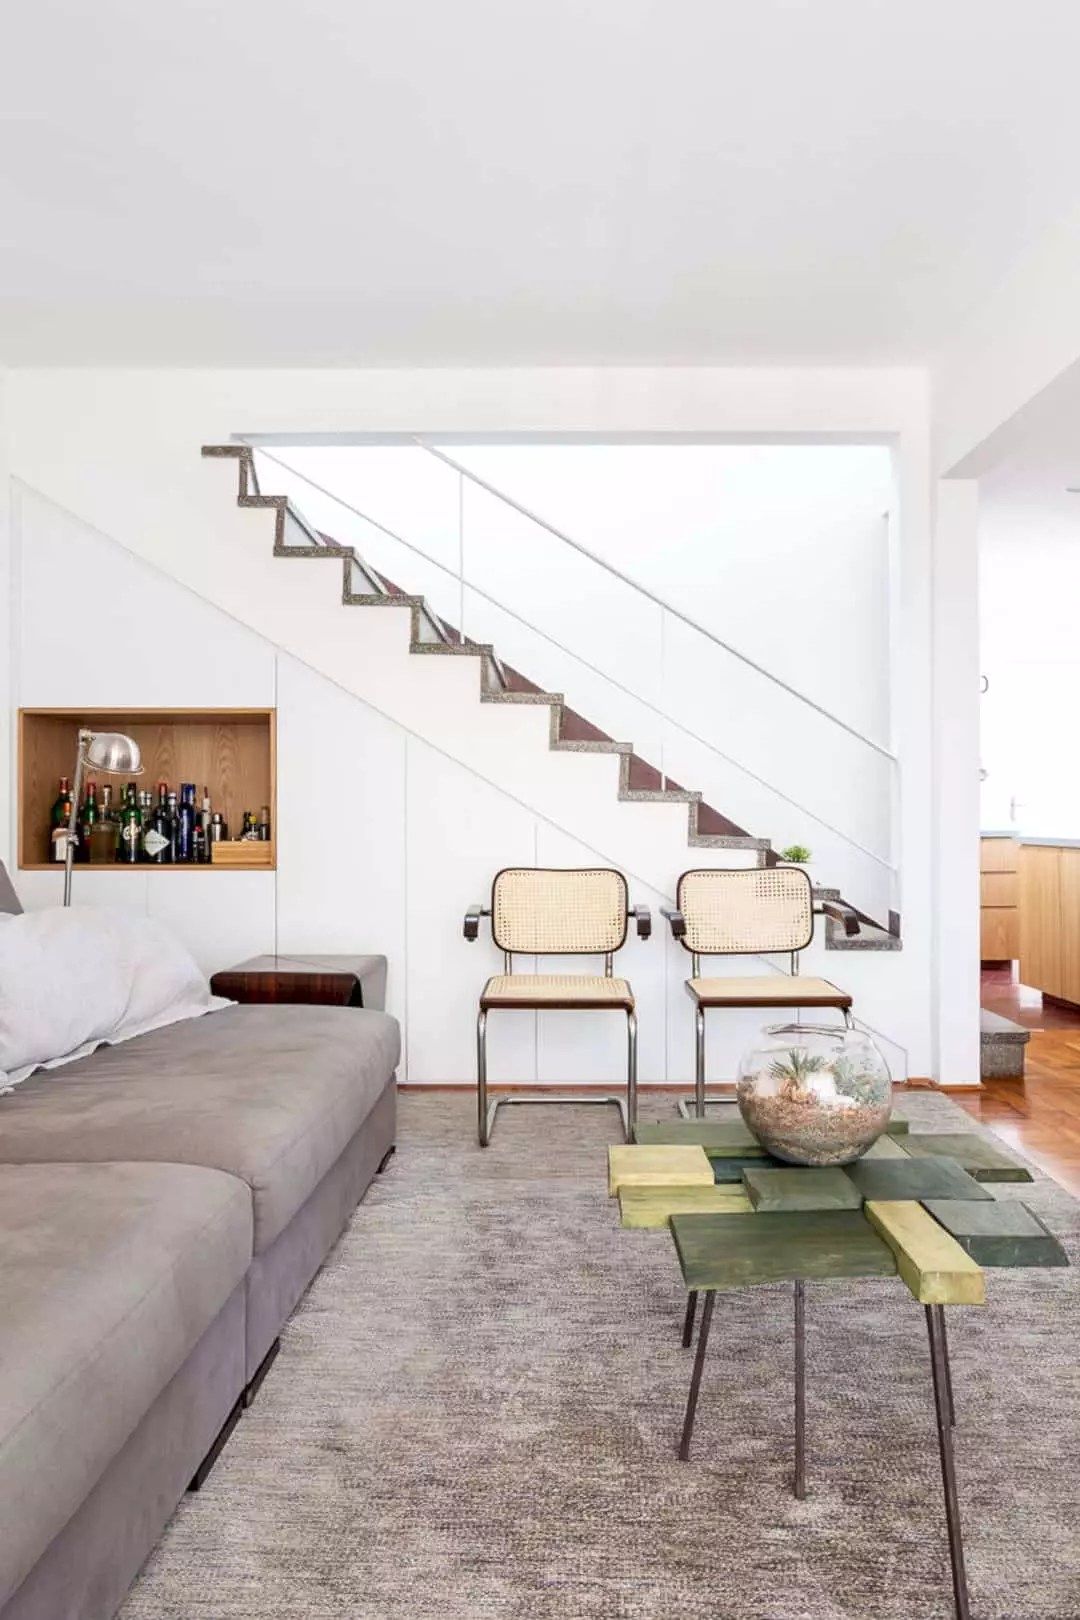 Apartment BF 81: A Two-Floors Residence with Contemporary Interior Design